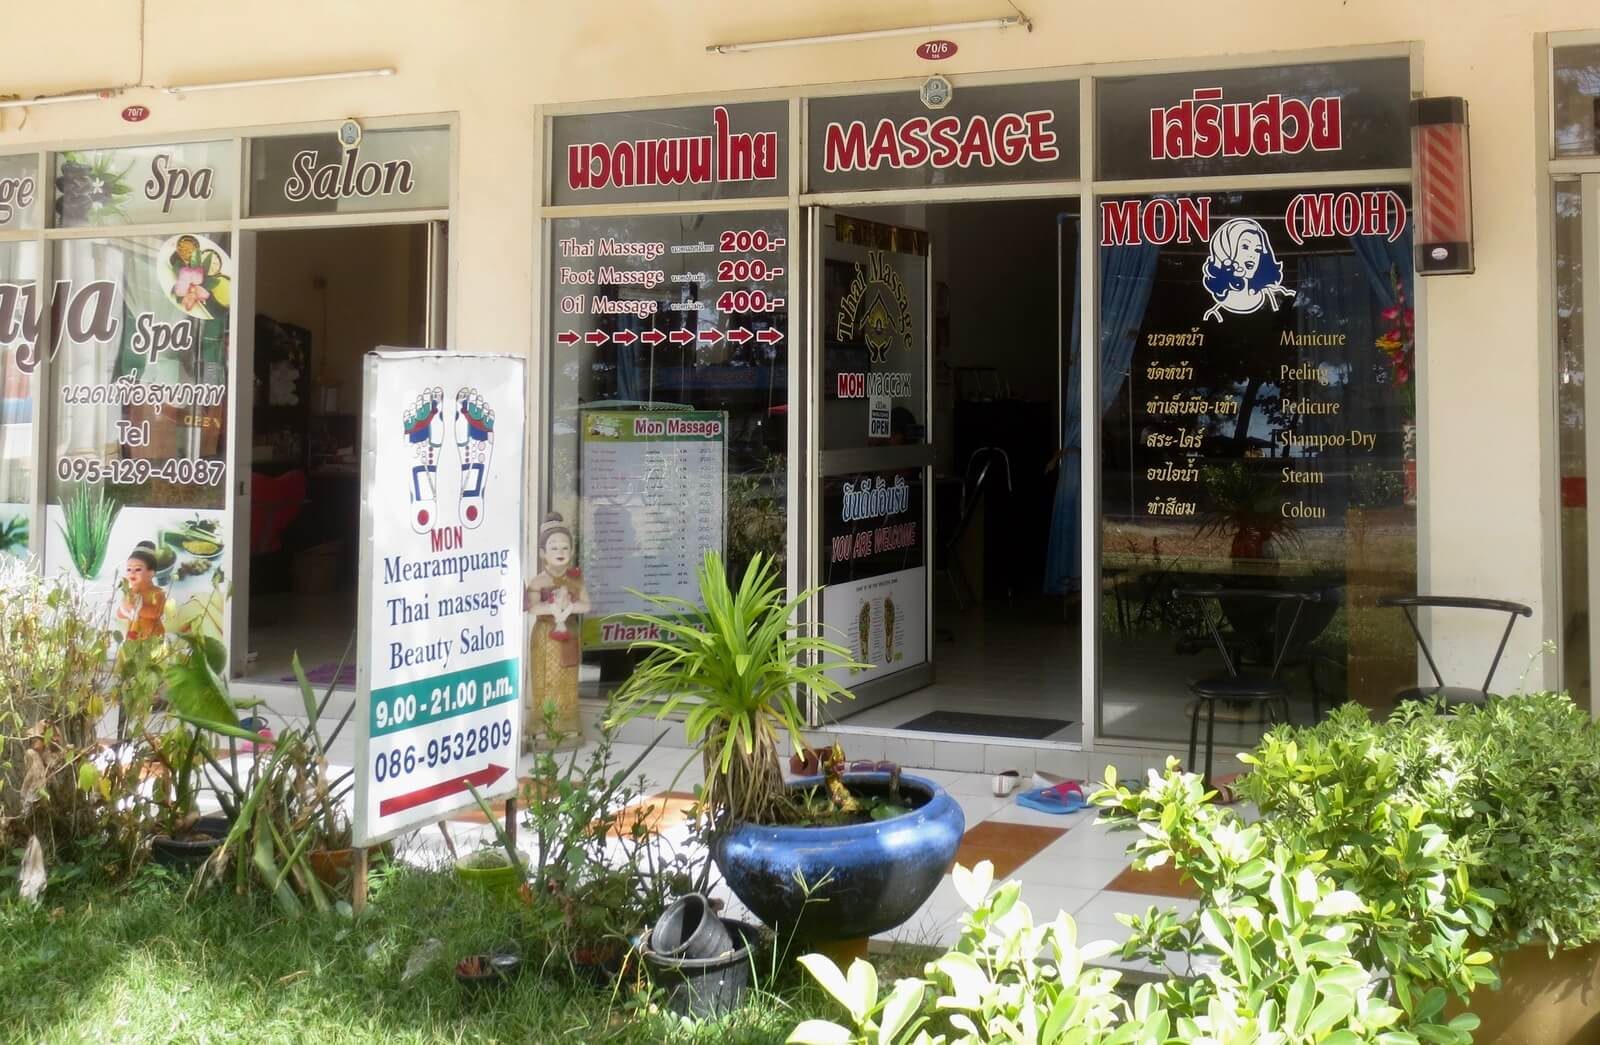 Thai massage parlor in Mae Rumphueng, Rayong province, Thailand